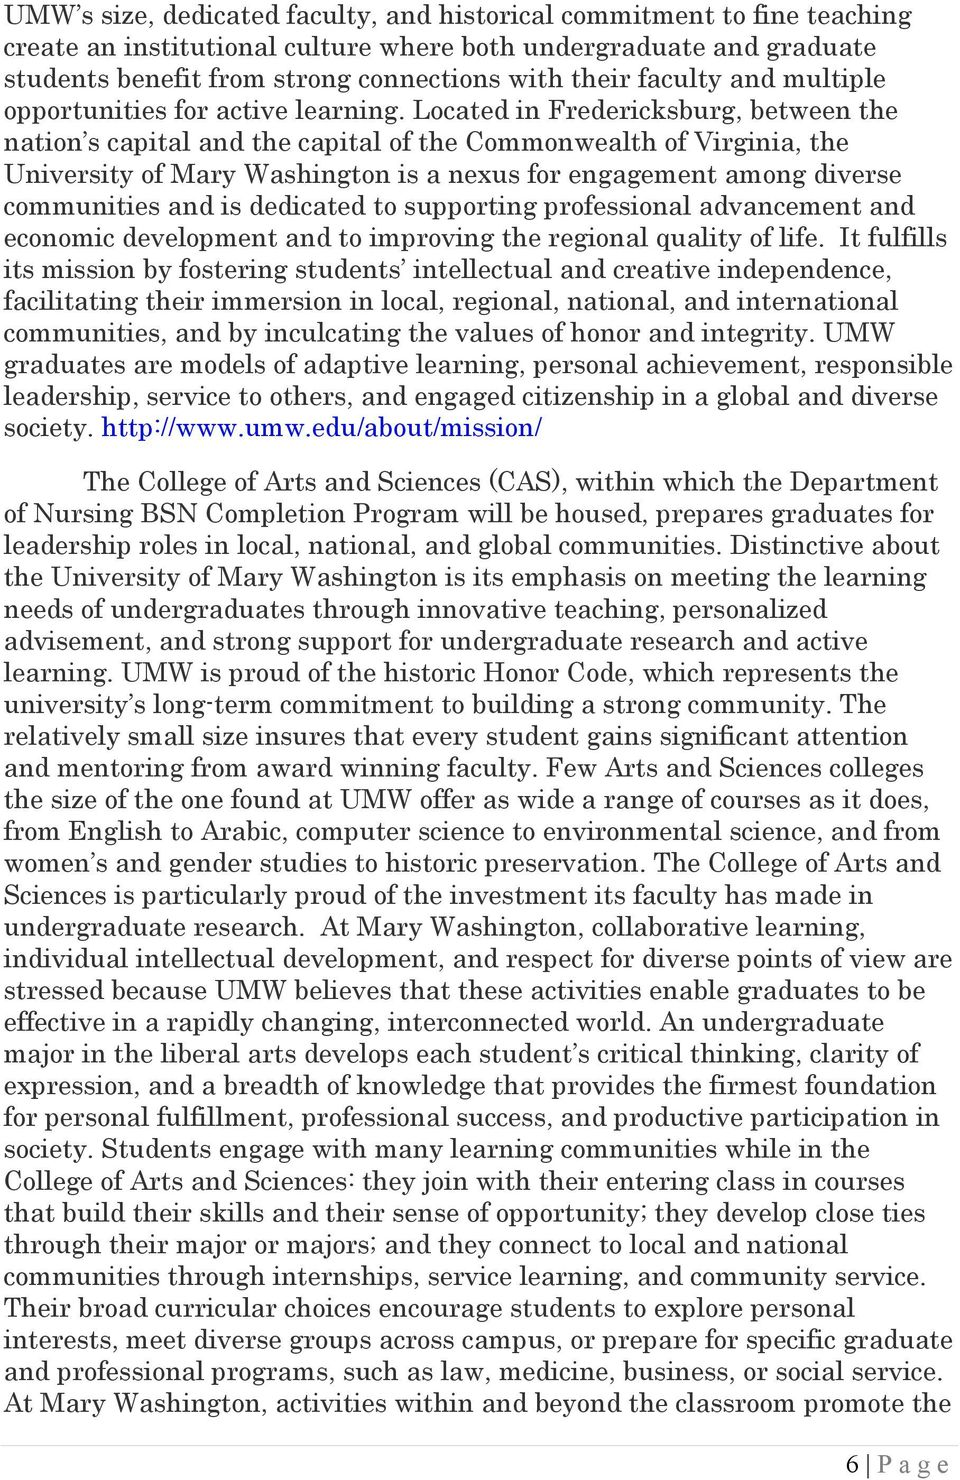 Located in Fredericksburg, between the nation s capital and the capital of the Commonwealth of Virginia, the University of Mary Washington is a nexus for engagement among diverse communities and is